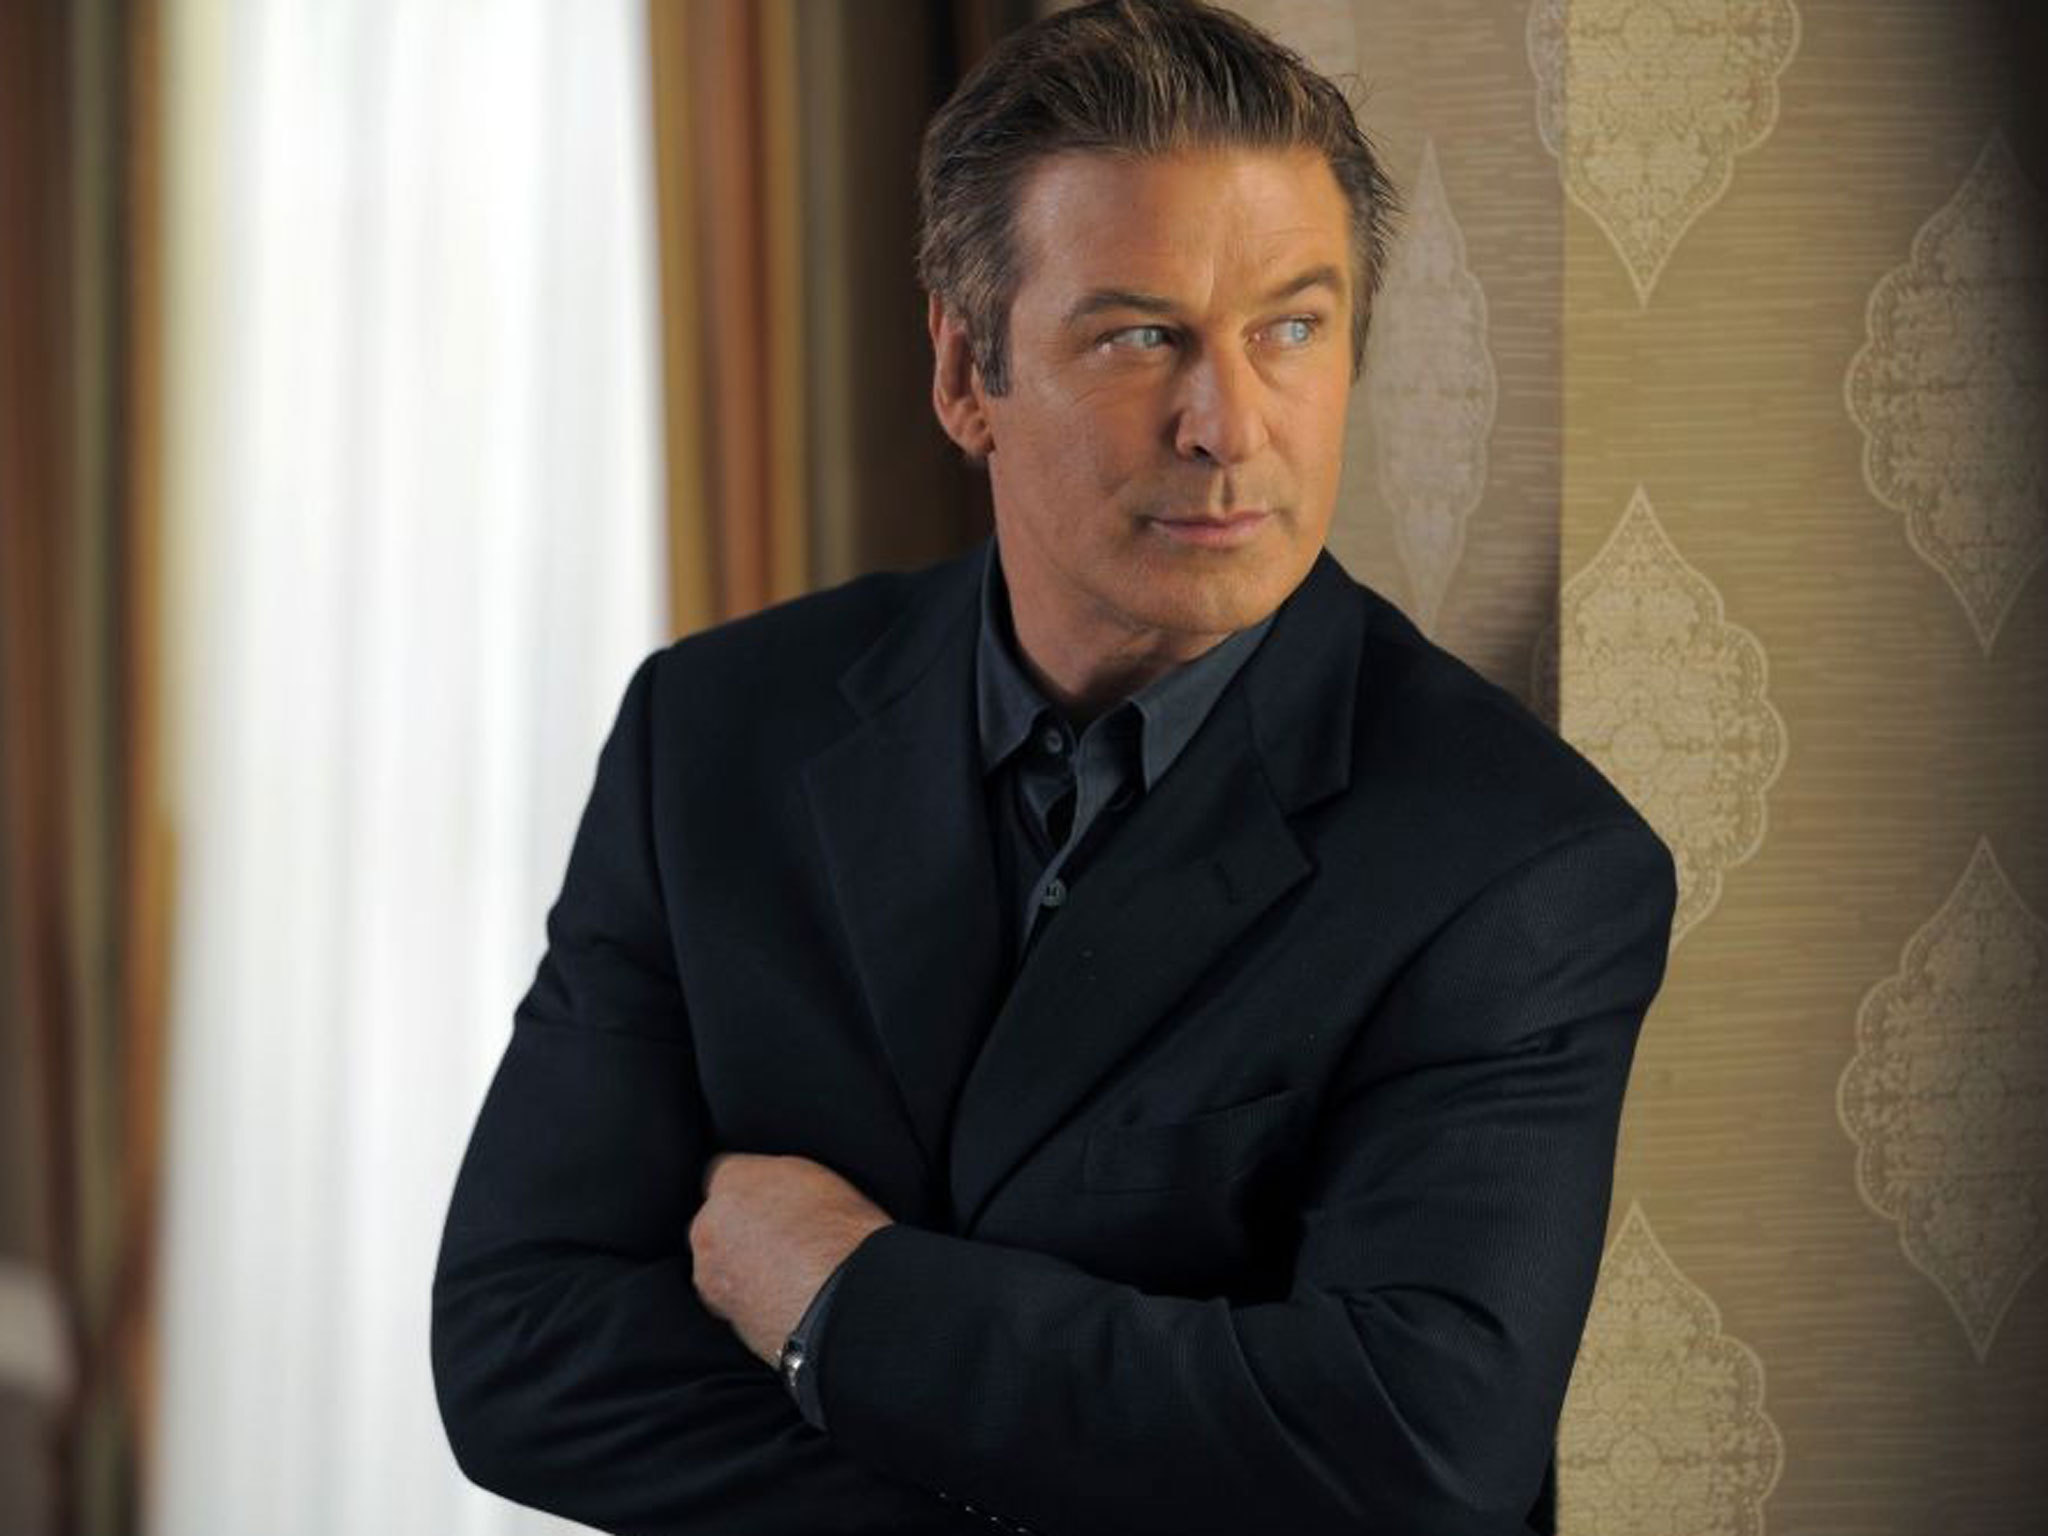 alec baldwin computer wallpaper 58589